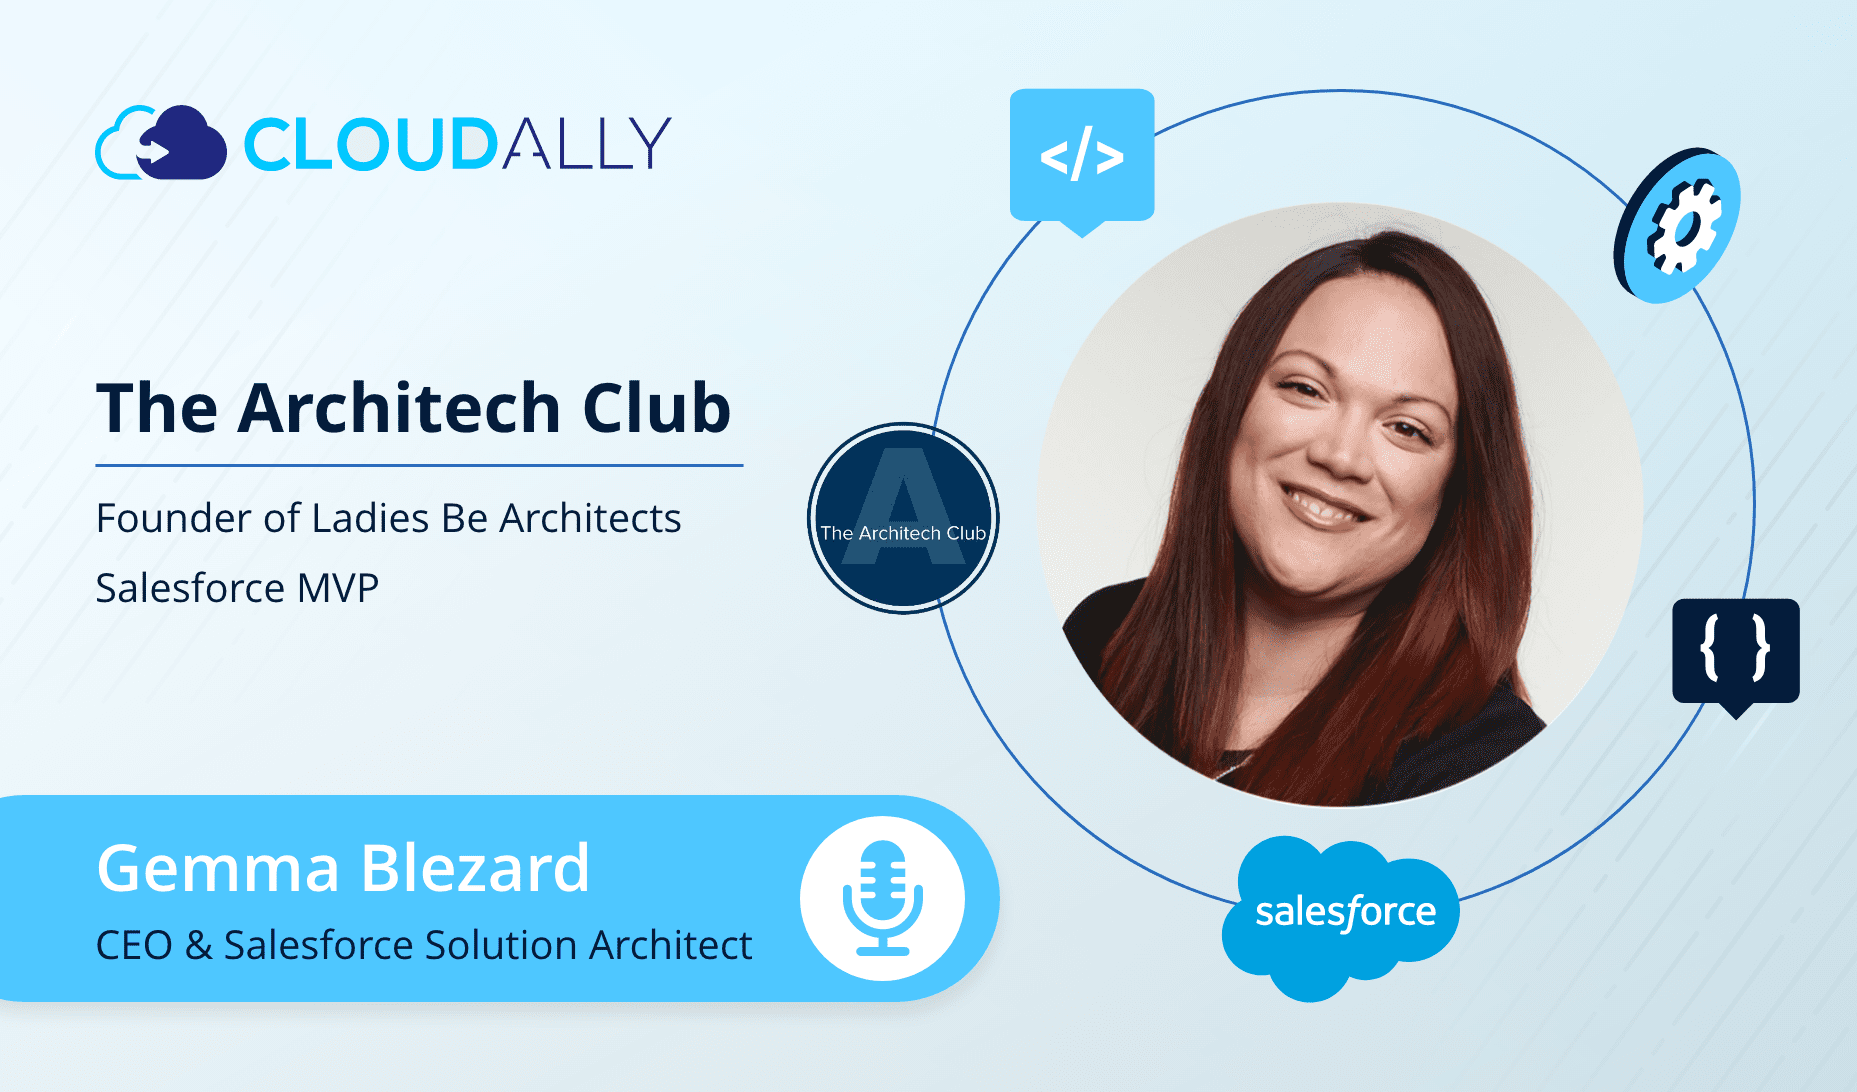 gemma blezard salesforce architect cta training certifications